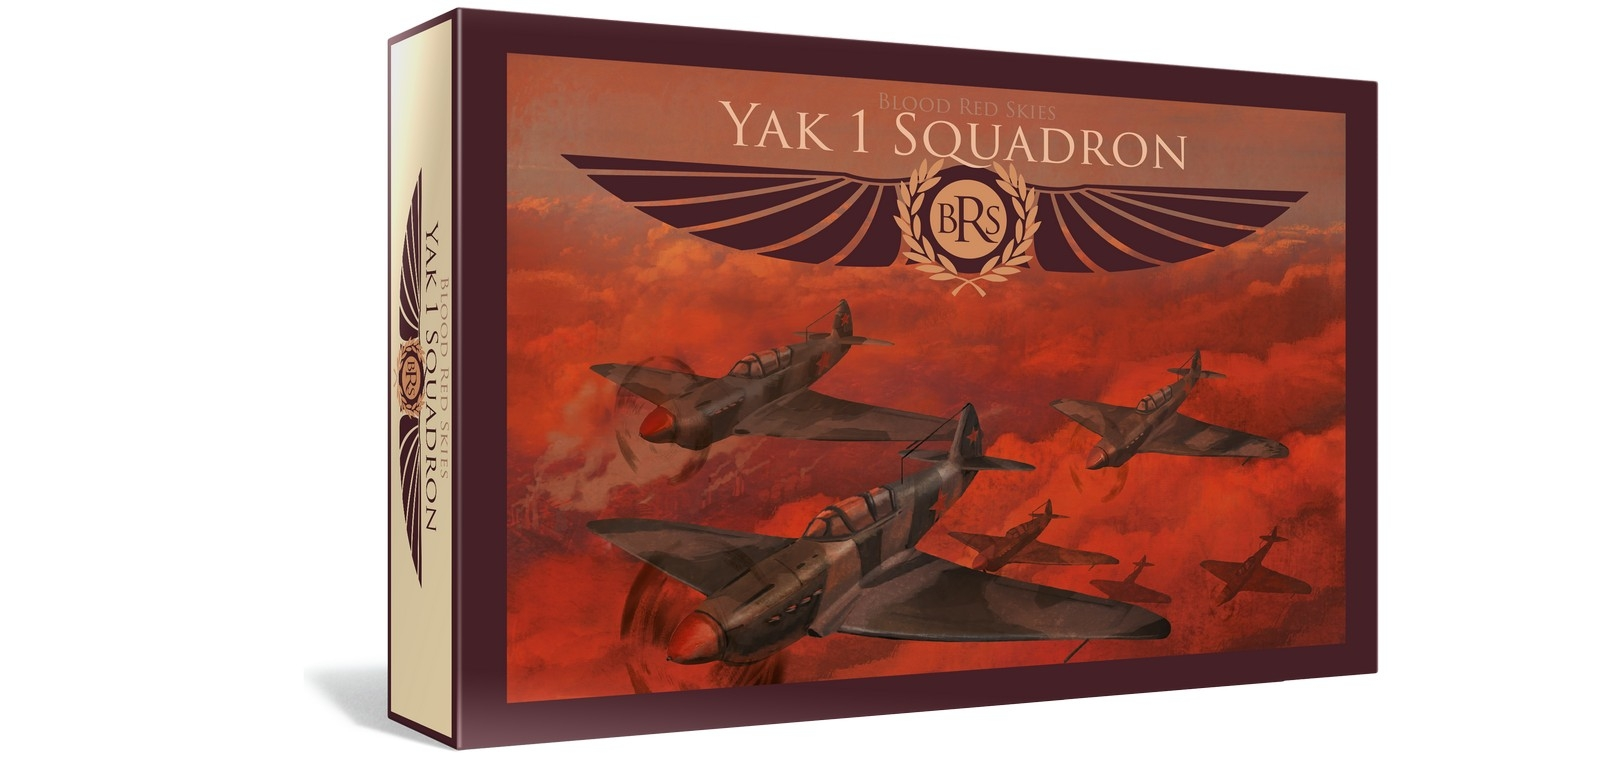 Warlord Games - Blood Red Skies - Soviet Yak 1 Squadron